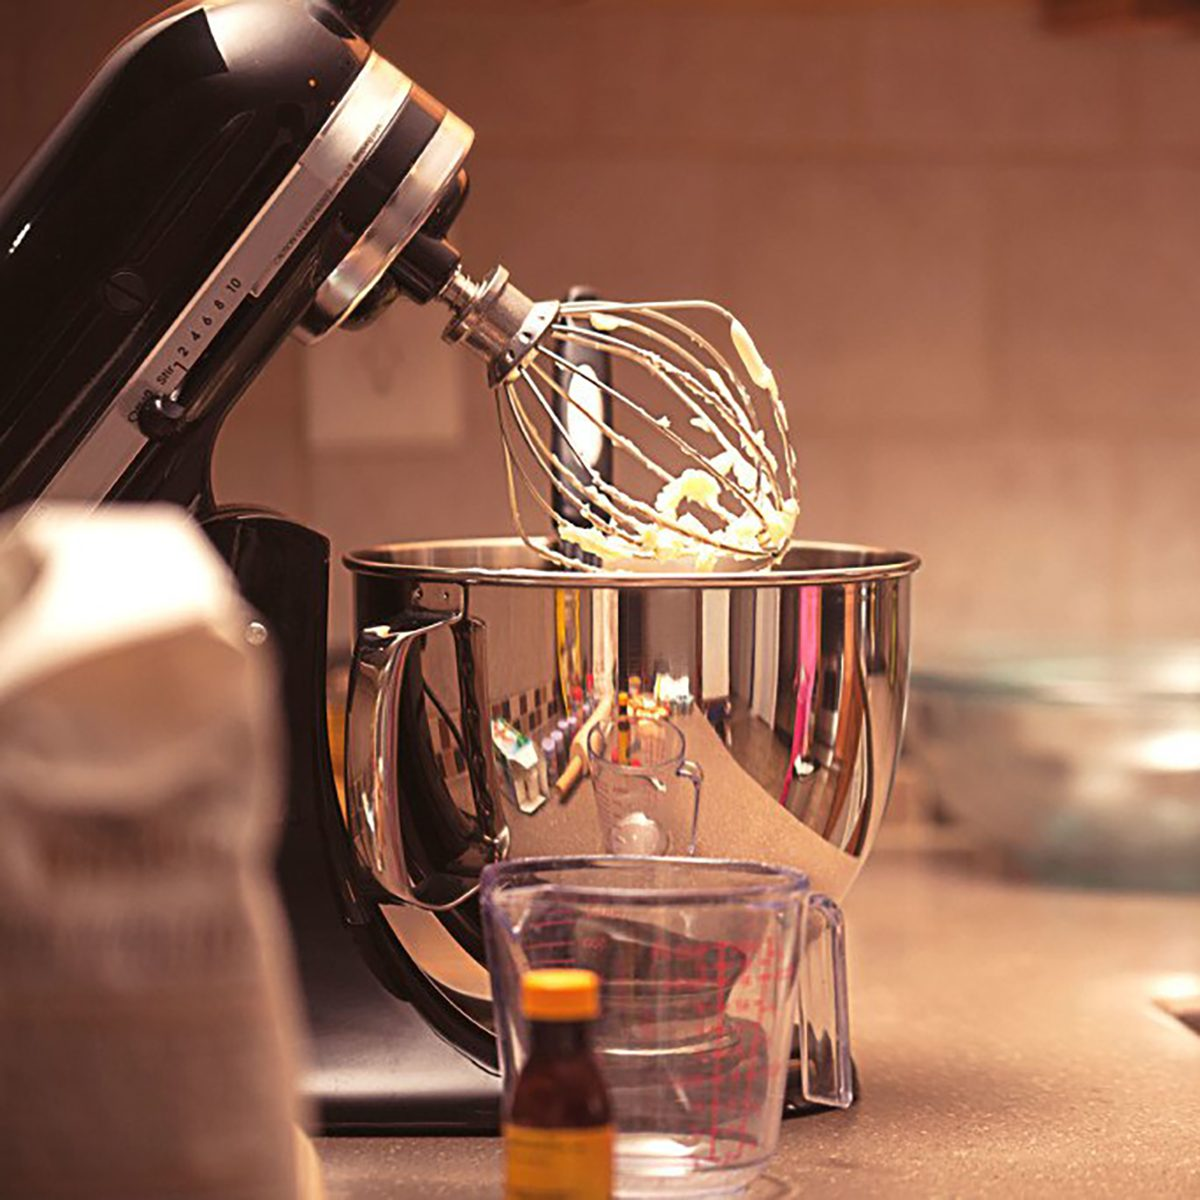 stand mixer on counter